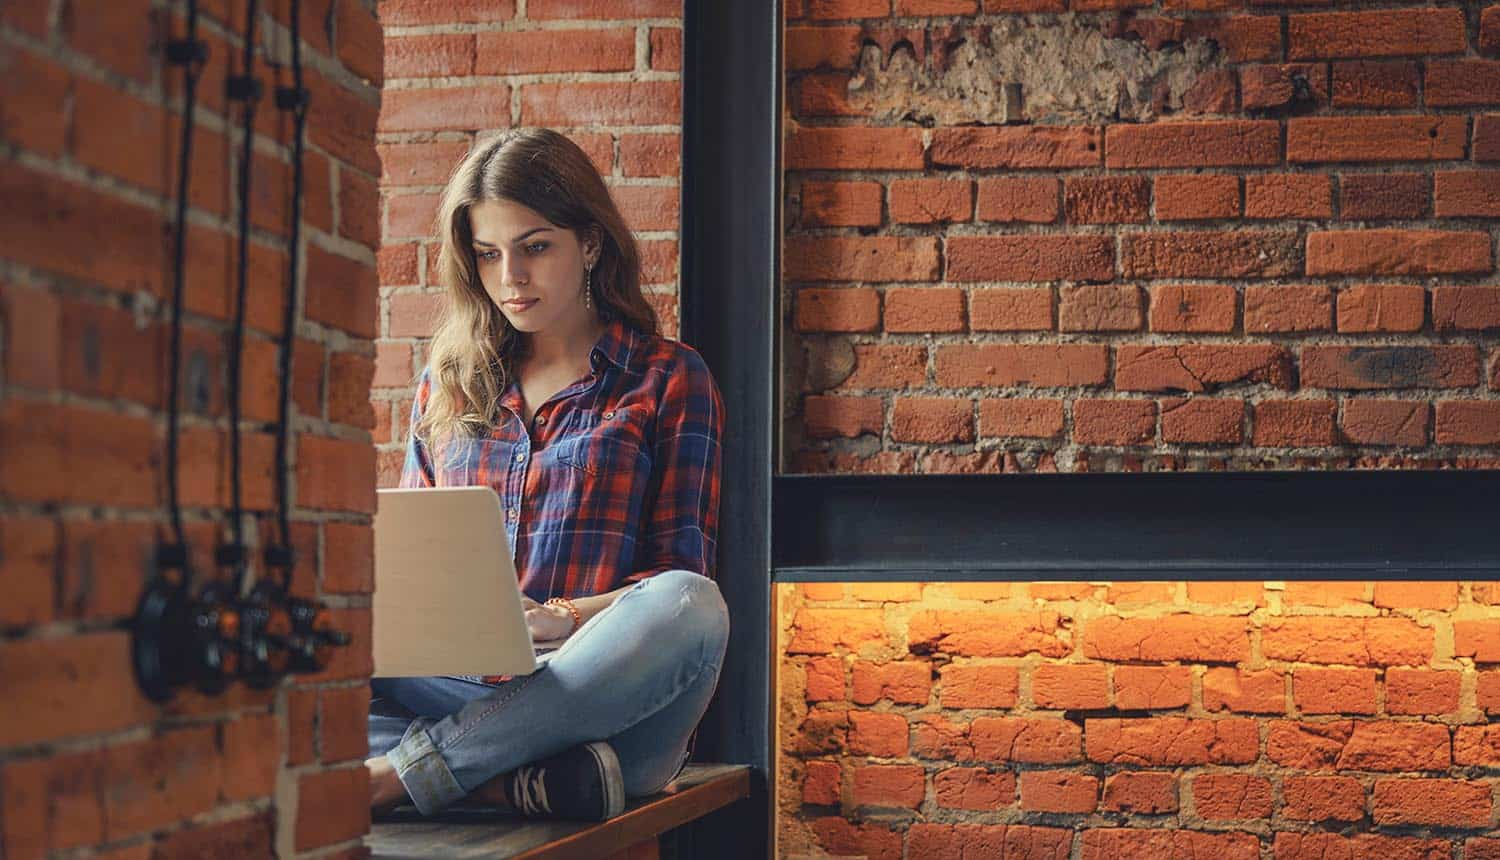 Woman with laptop in the loft showing the lack of safe data practices while remote working